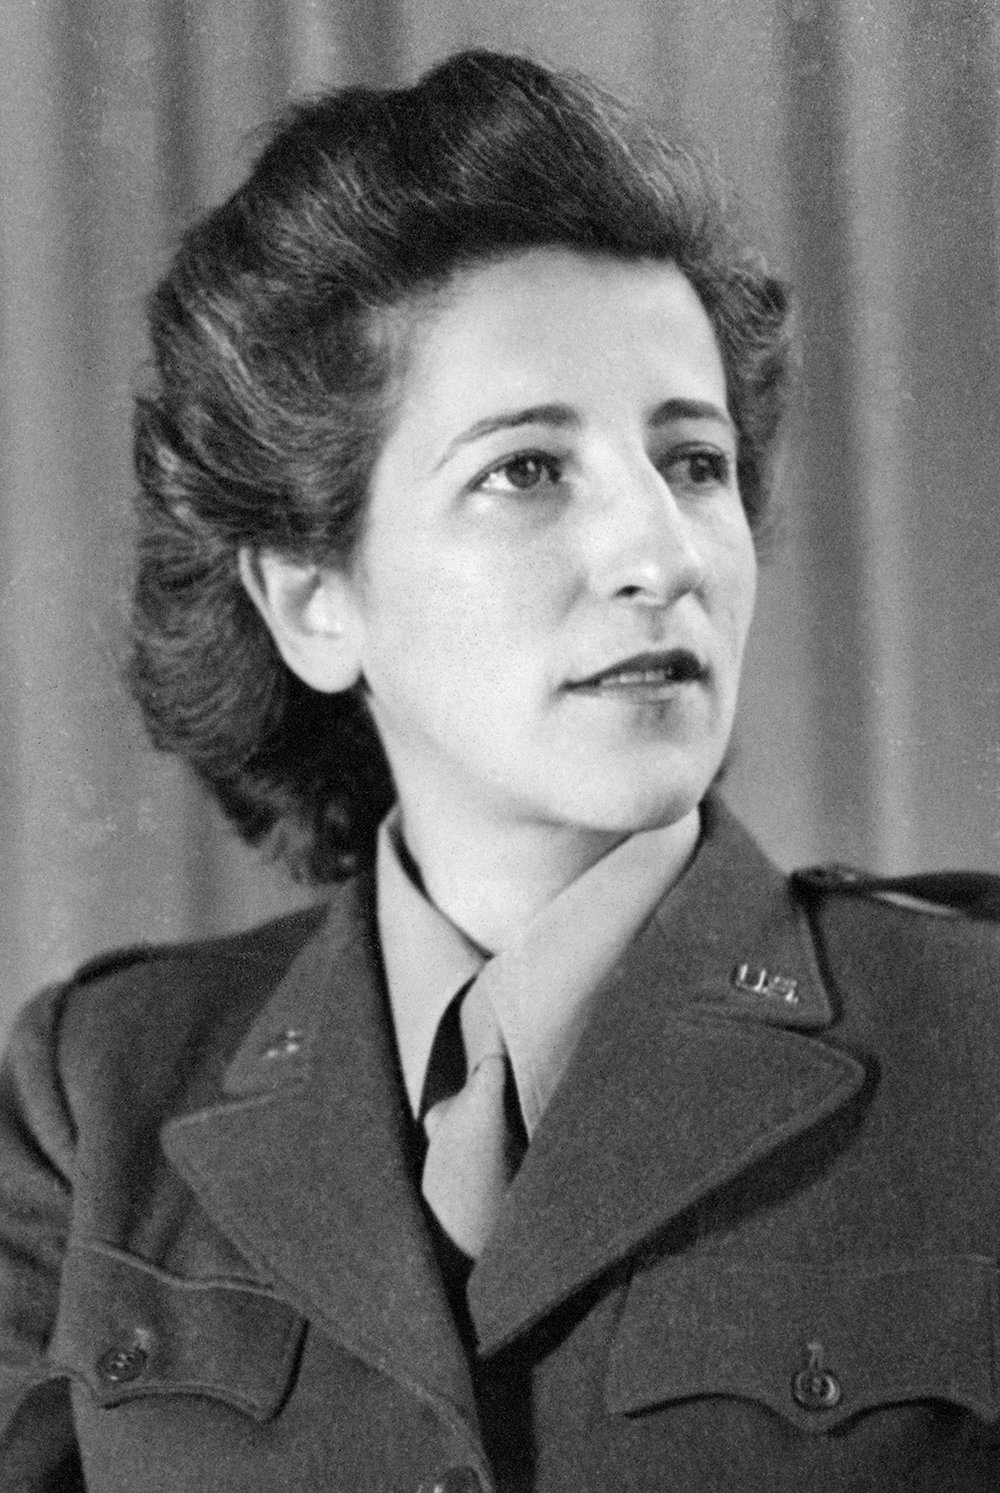 Esther Schwartzstein during WWII